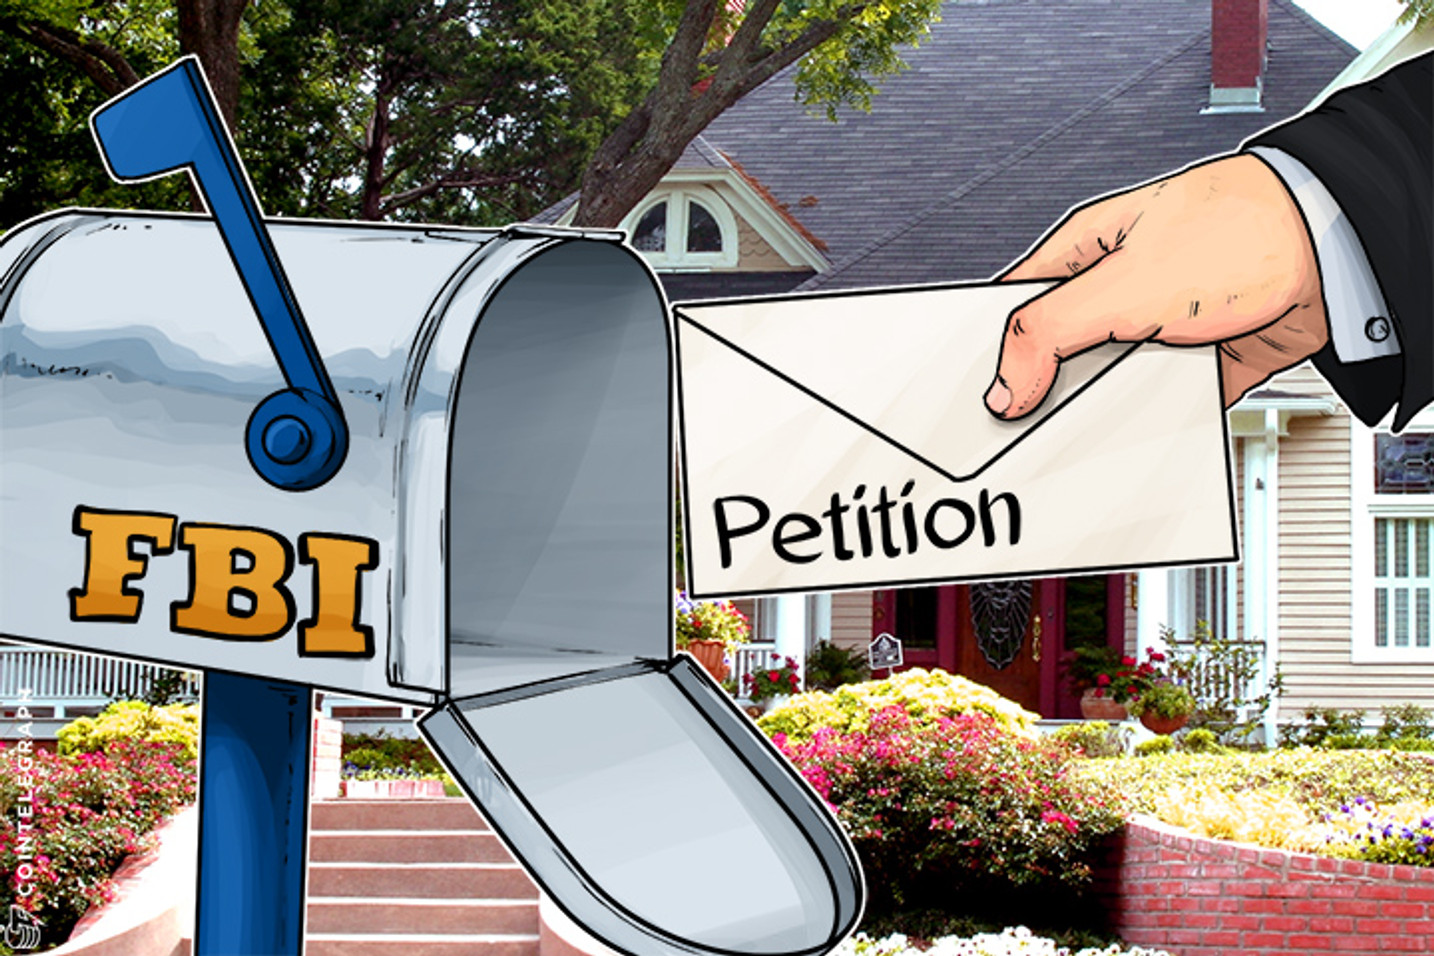 Users File FBI Petition Against Kraken, Complain About Stolen Funds